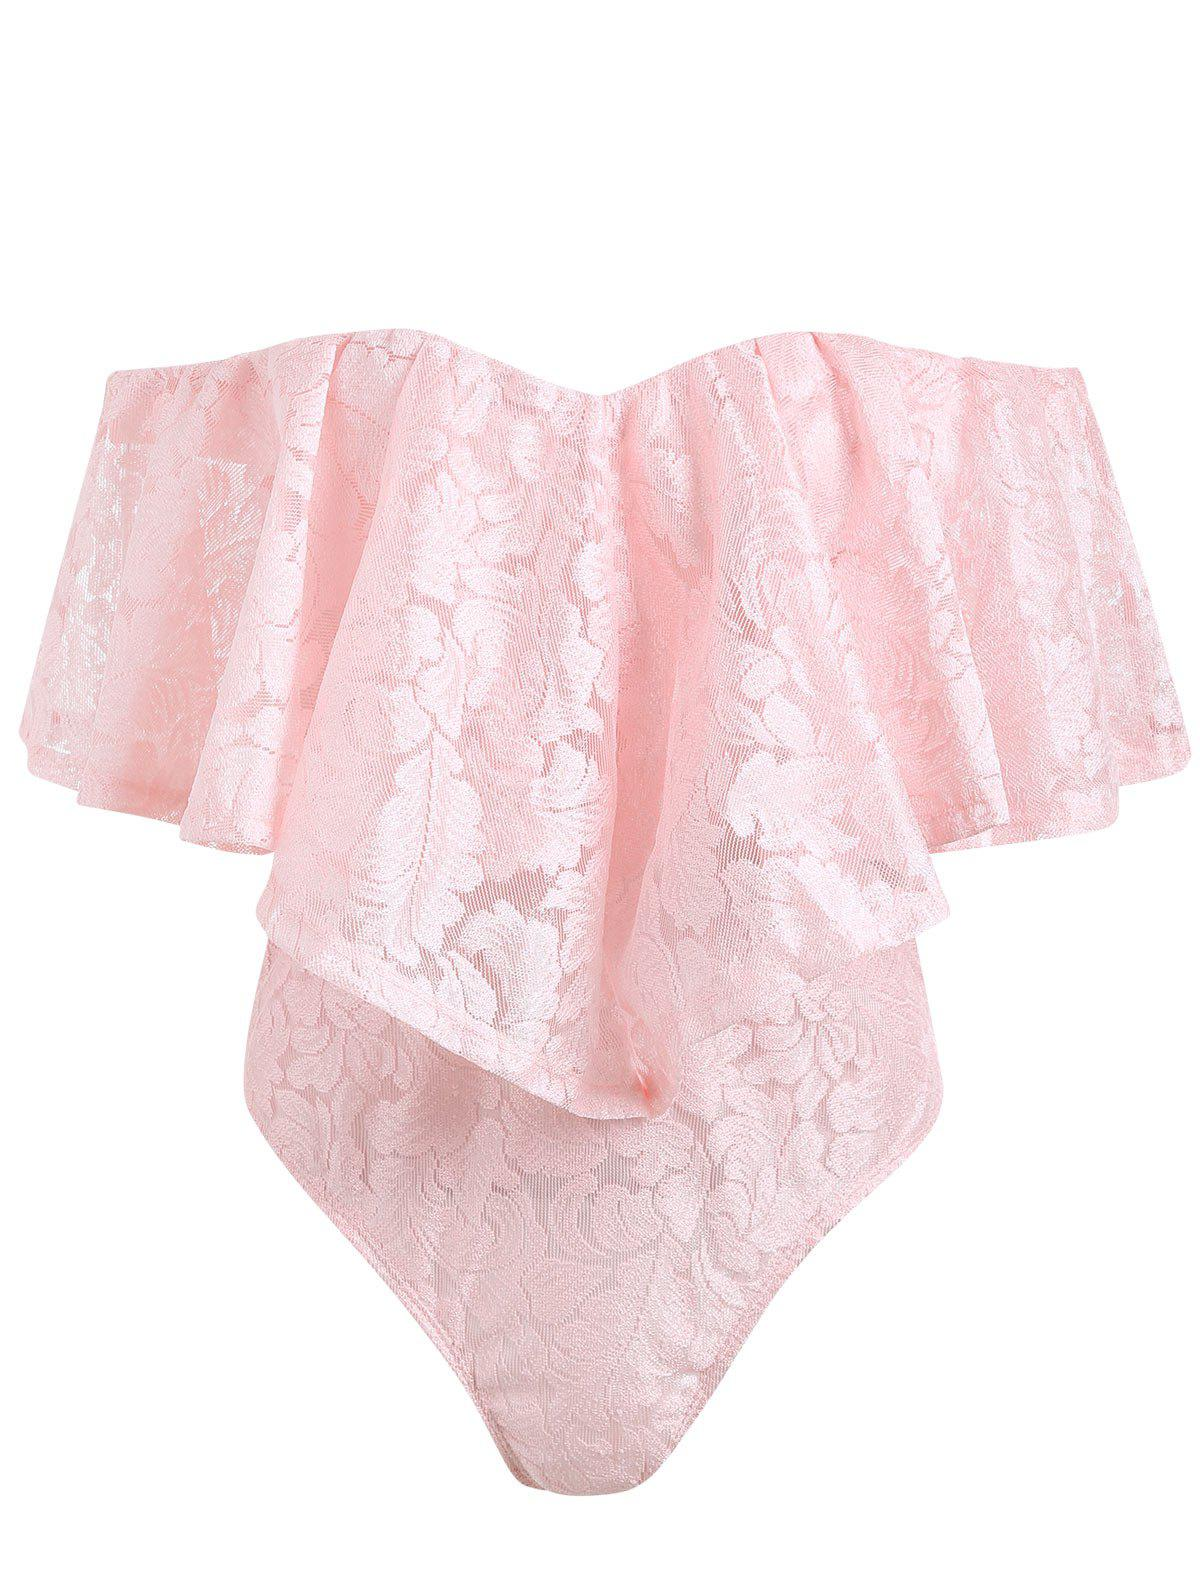 Off The Shoulder Frill Lace Swimsuit - LIGHT PINK M